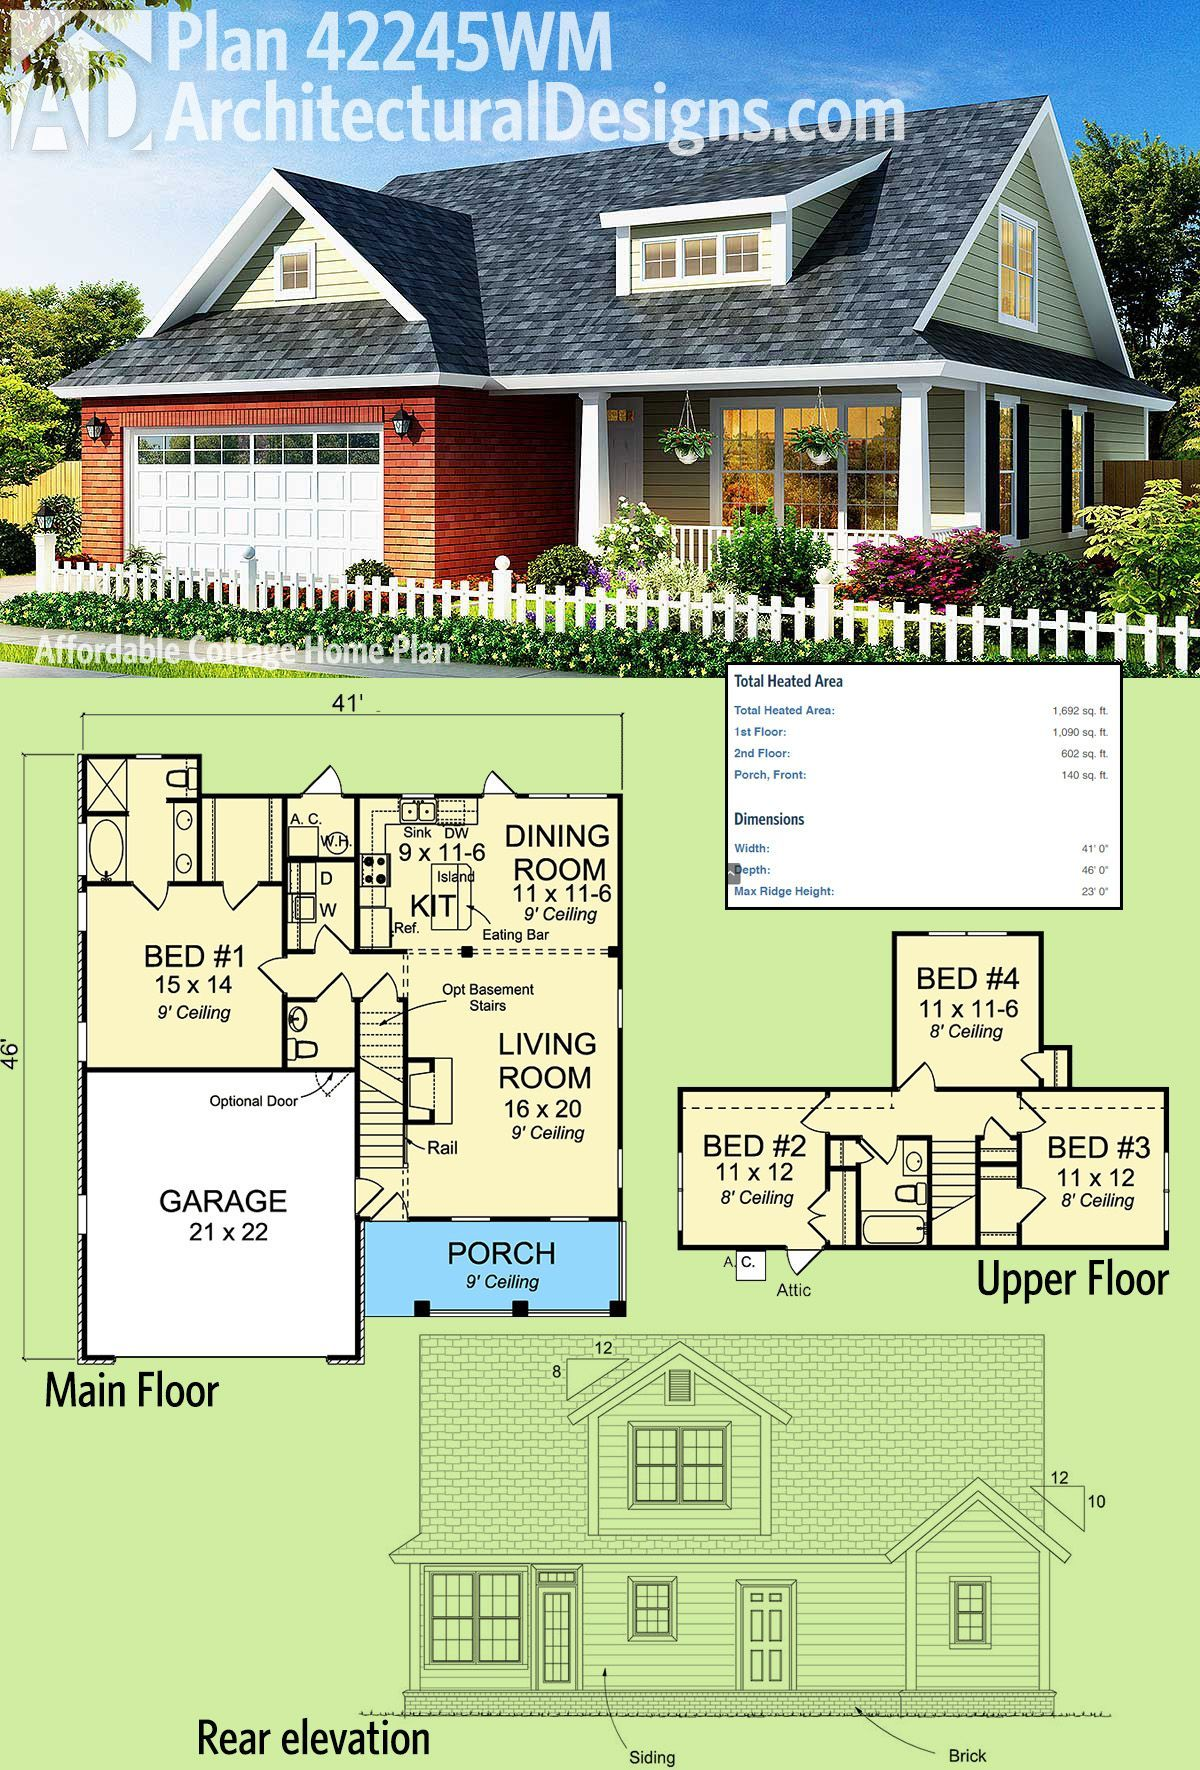 Architectural Designs 4 Bed Cottage House Plan 42245wm Gives You Over 1 600 Square Feet Of Heated Living Space On House Plans Cottage House Plans Cottage Homes